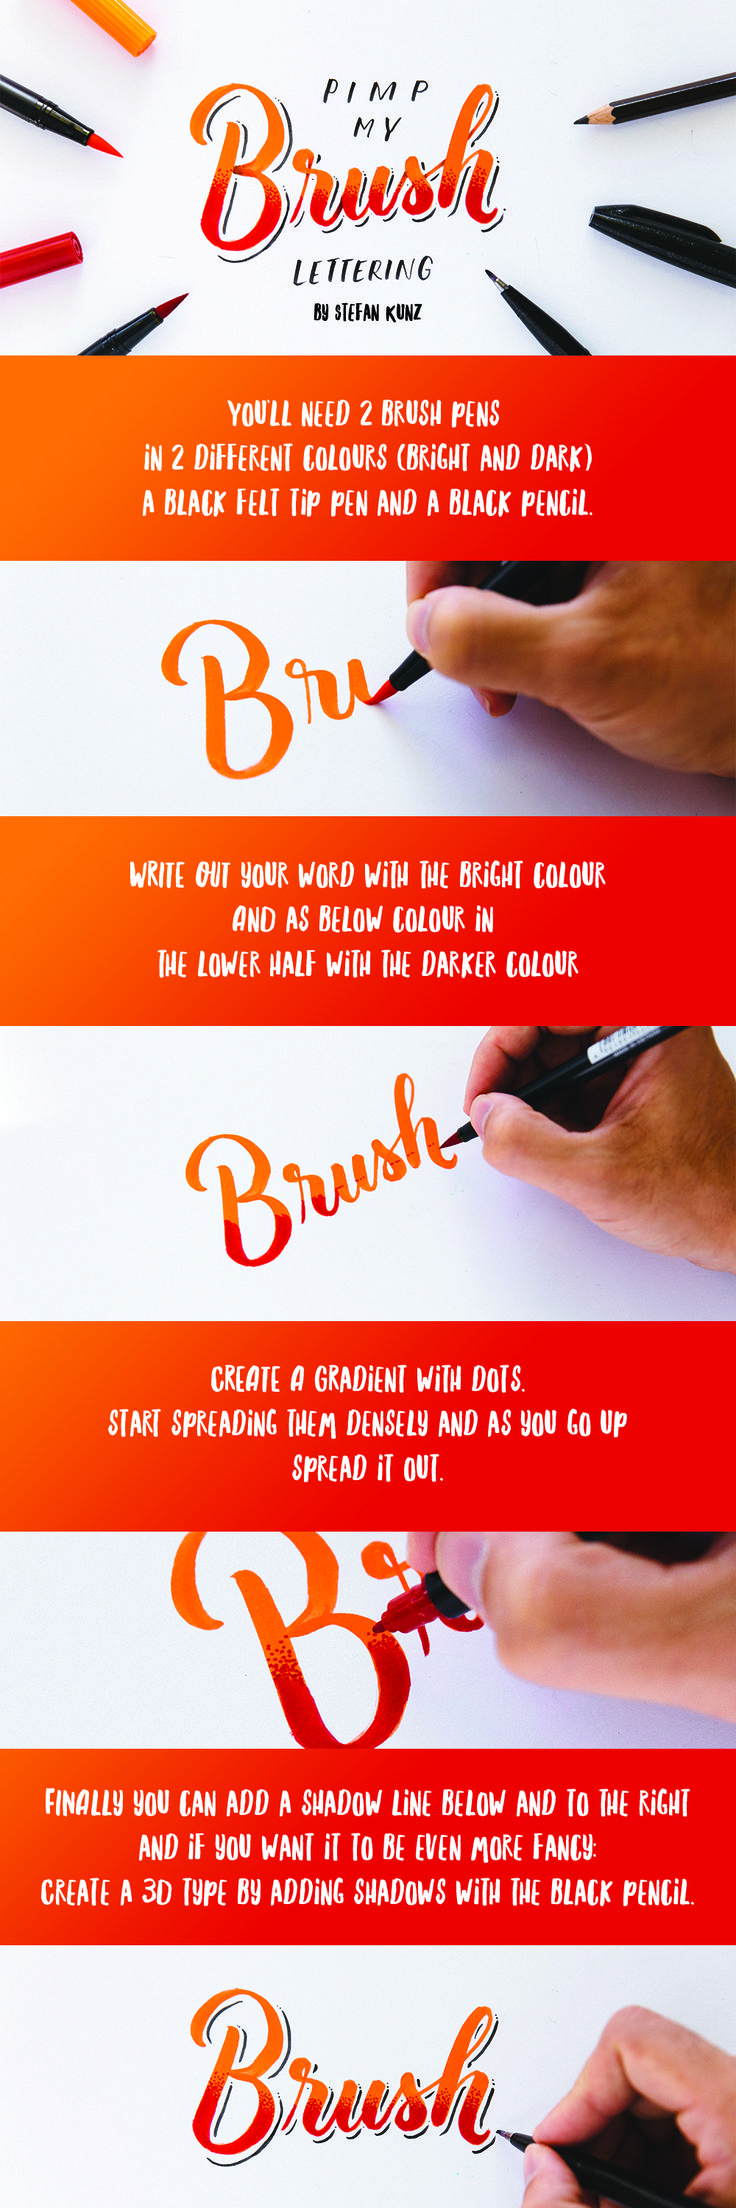 Improve your Brush Lettering/Calligraphy with these easy 3 steps.